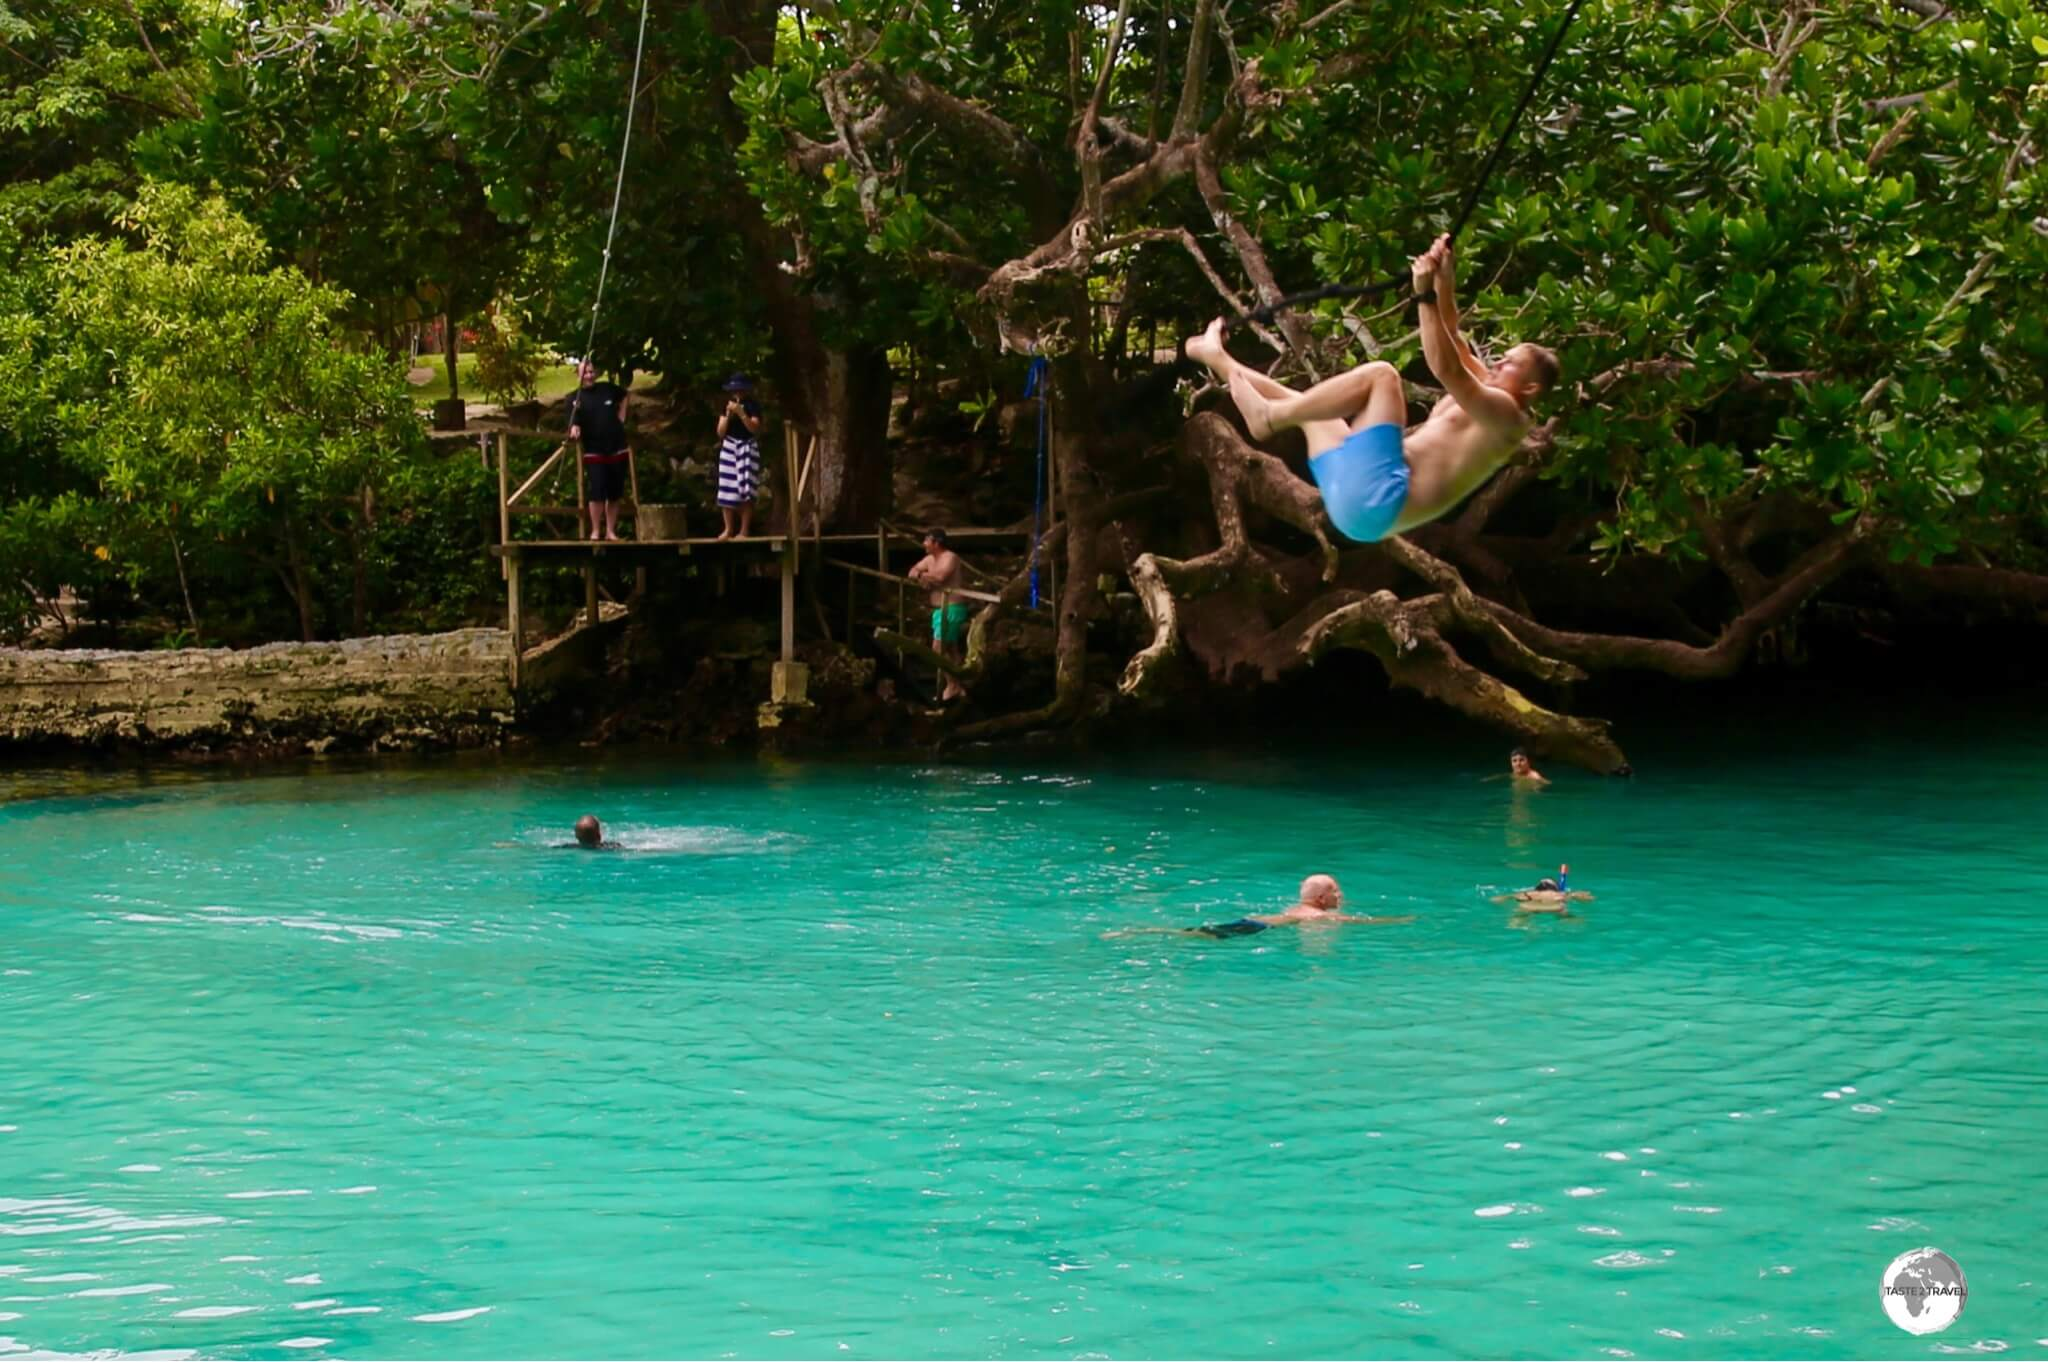 Blue Lagoon is a place to unwind and swing like a monkey!